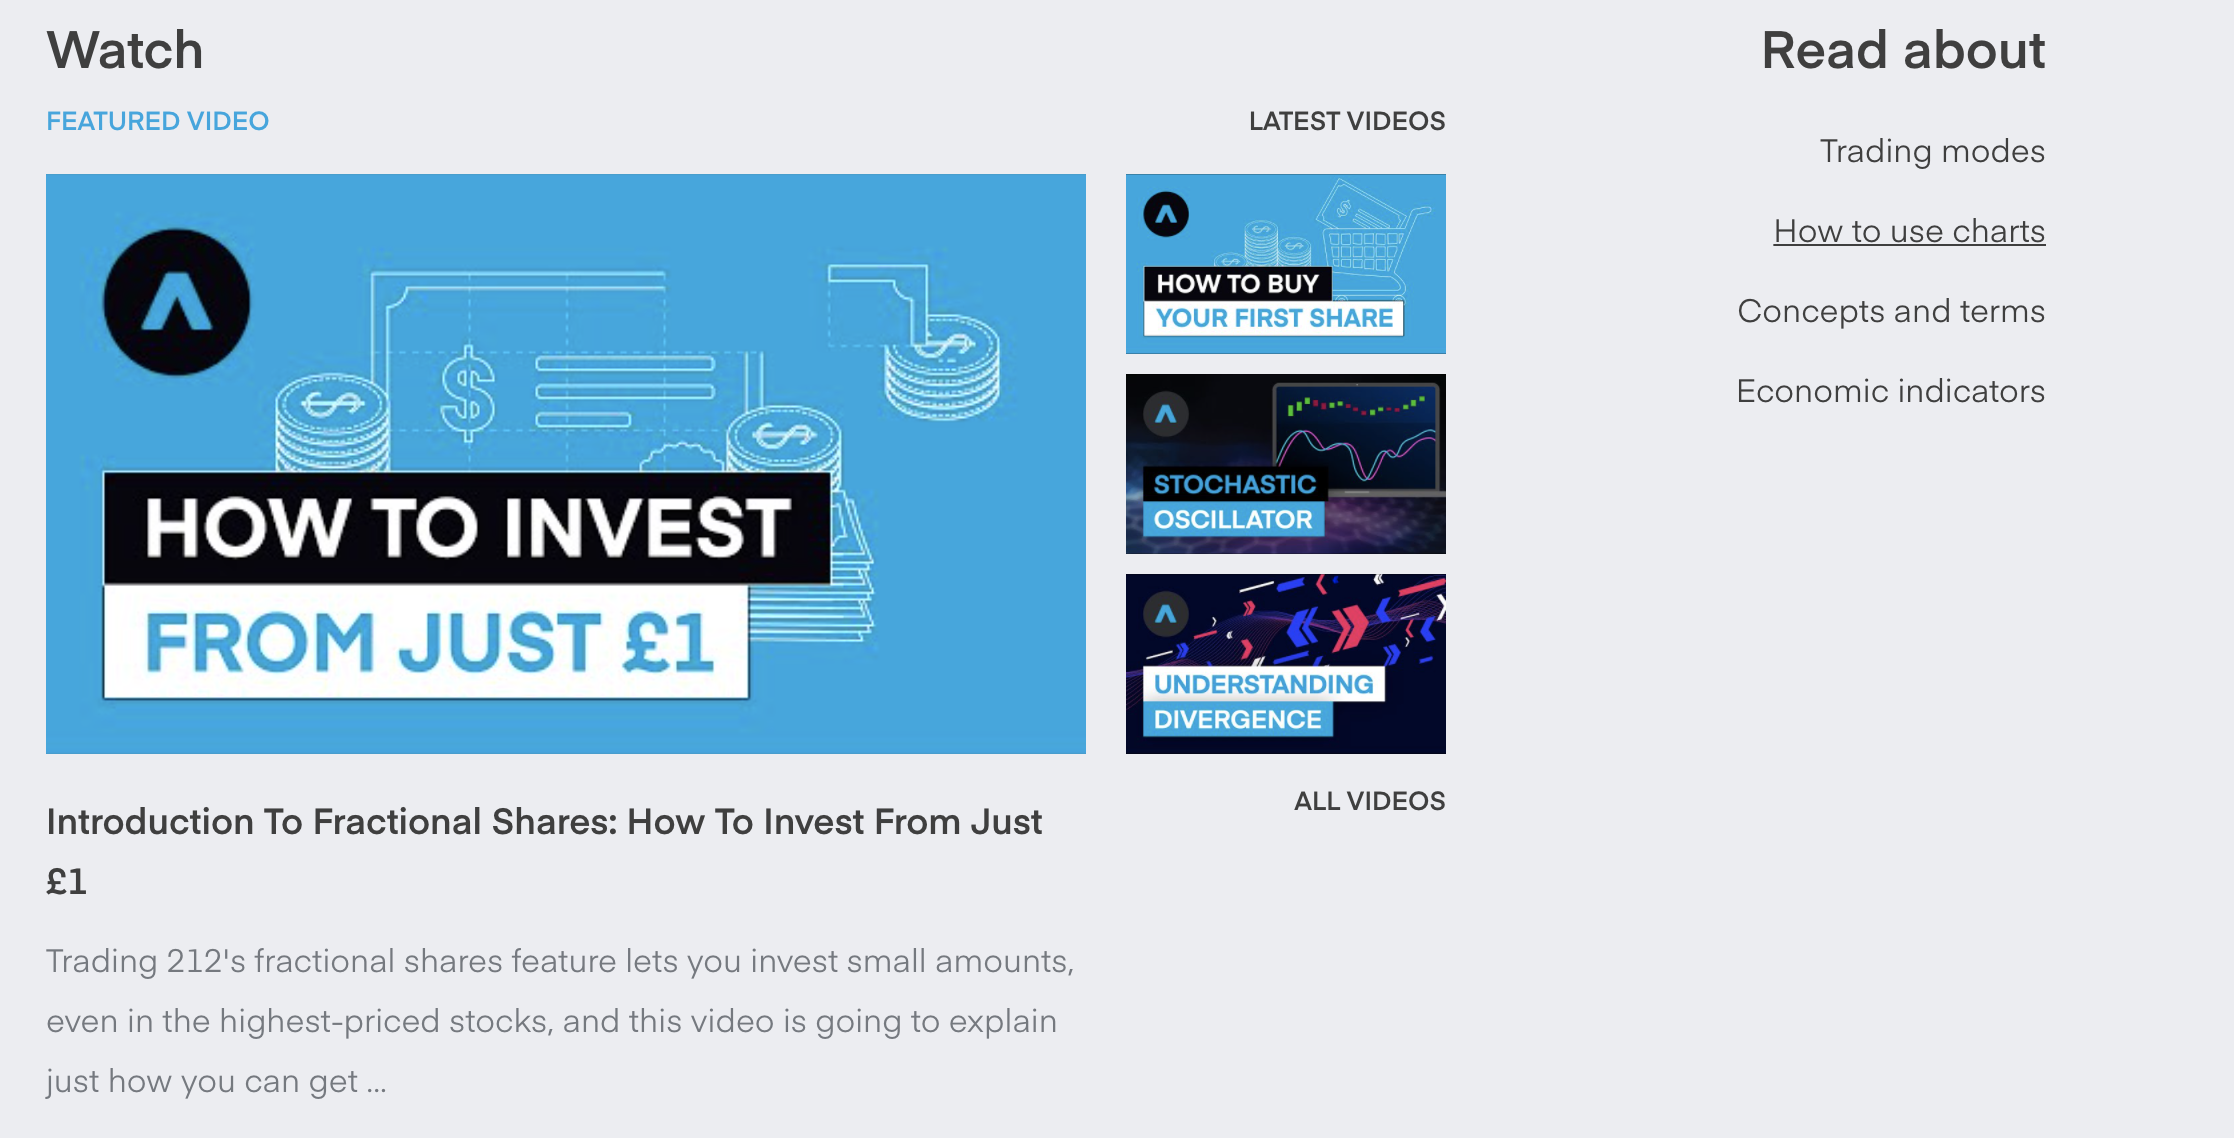 """Screenshot from trading212.com showing some of the videos and educational tools the platform provides. The video says """"how to invest with just $1."""""""